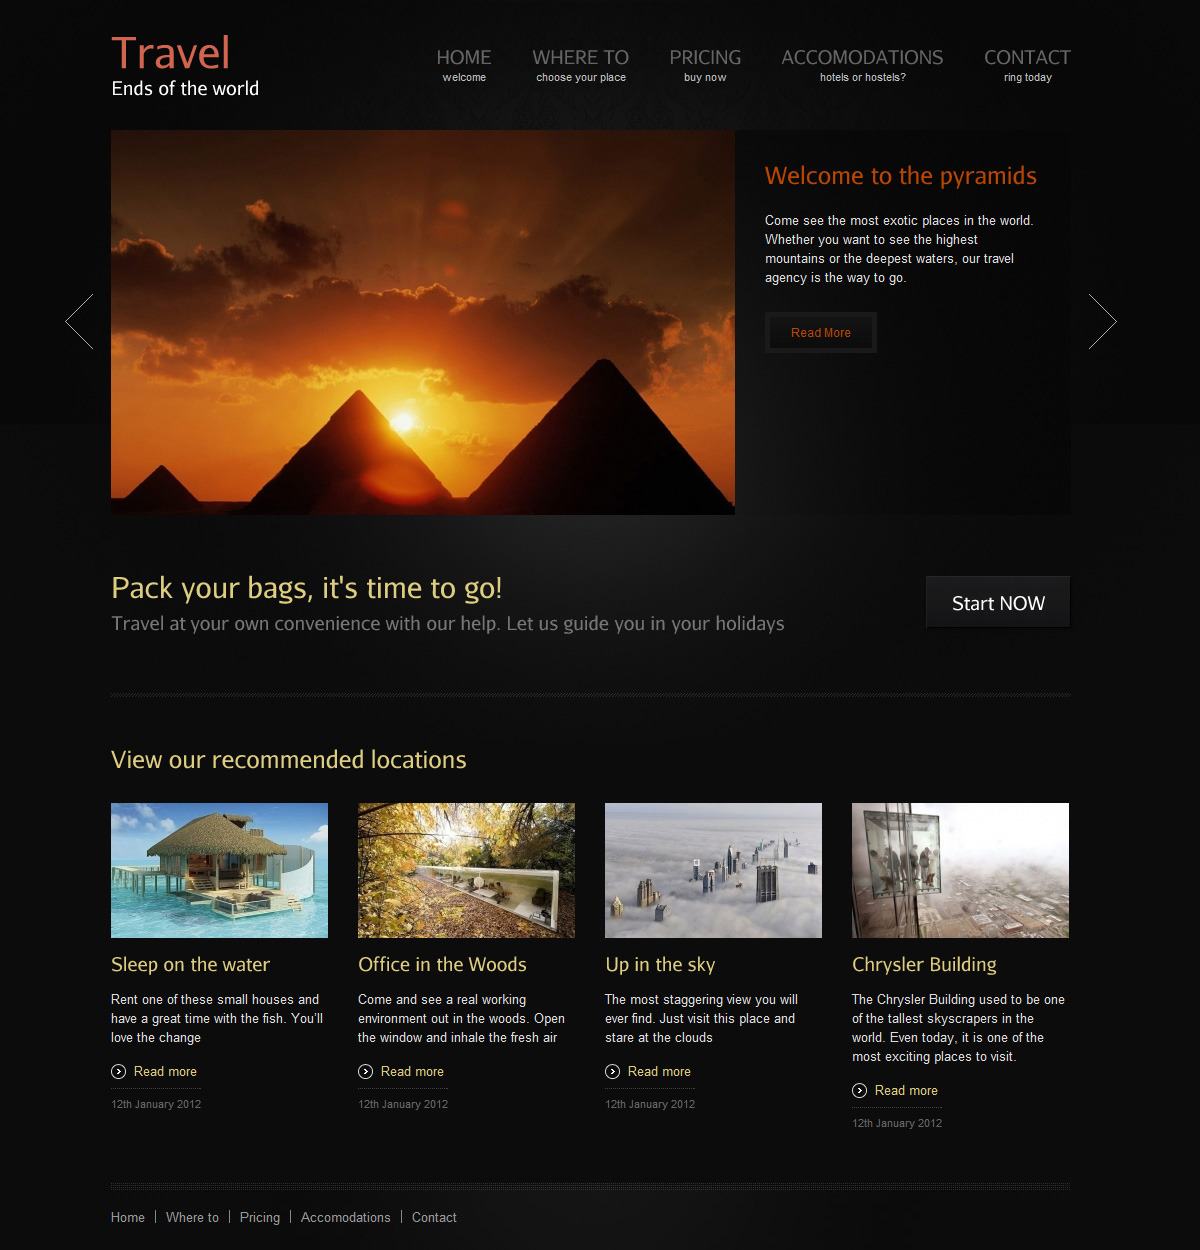 reFresh - Powerful Clean & Elegant WordPress Theme - Traveling Agency Demo - Showcase